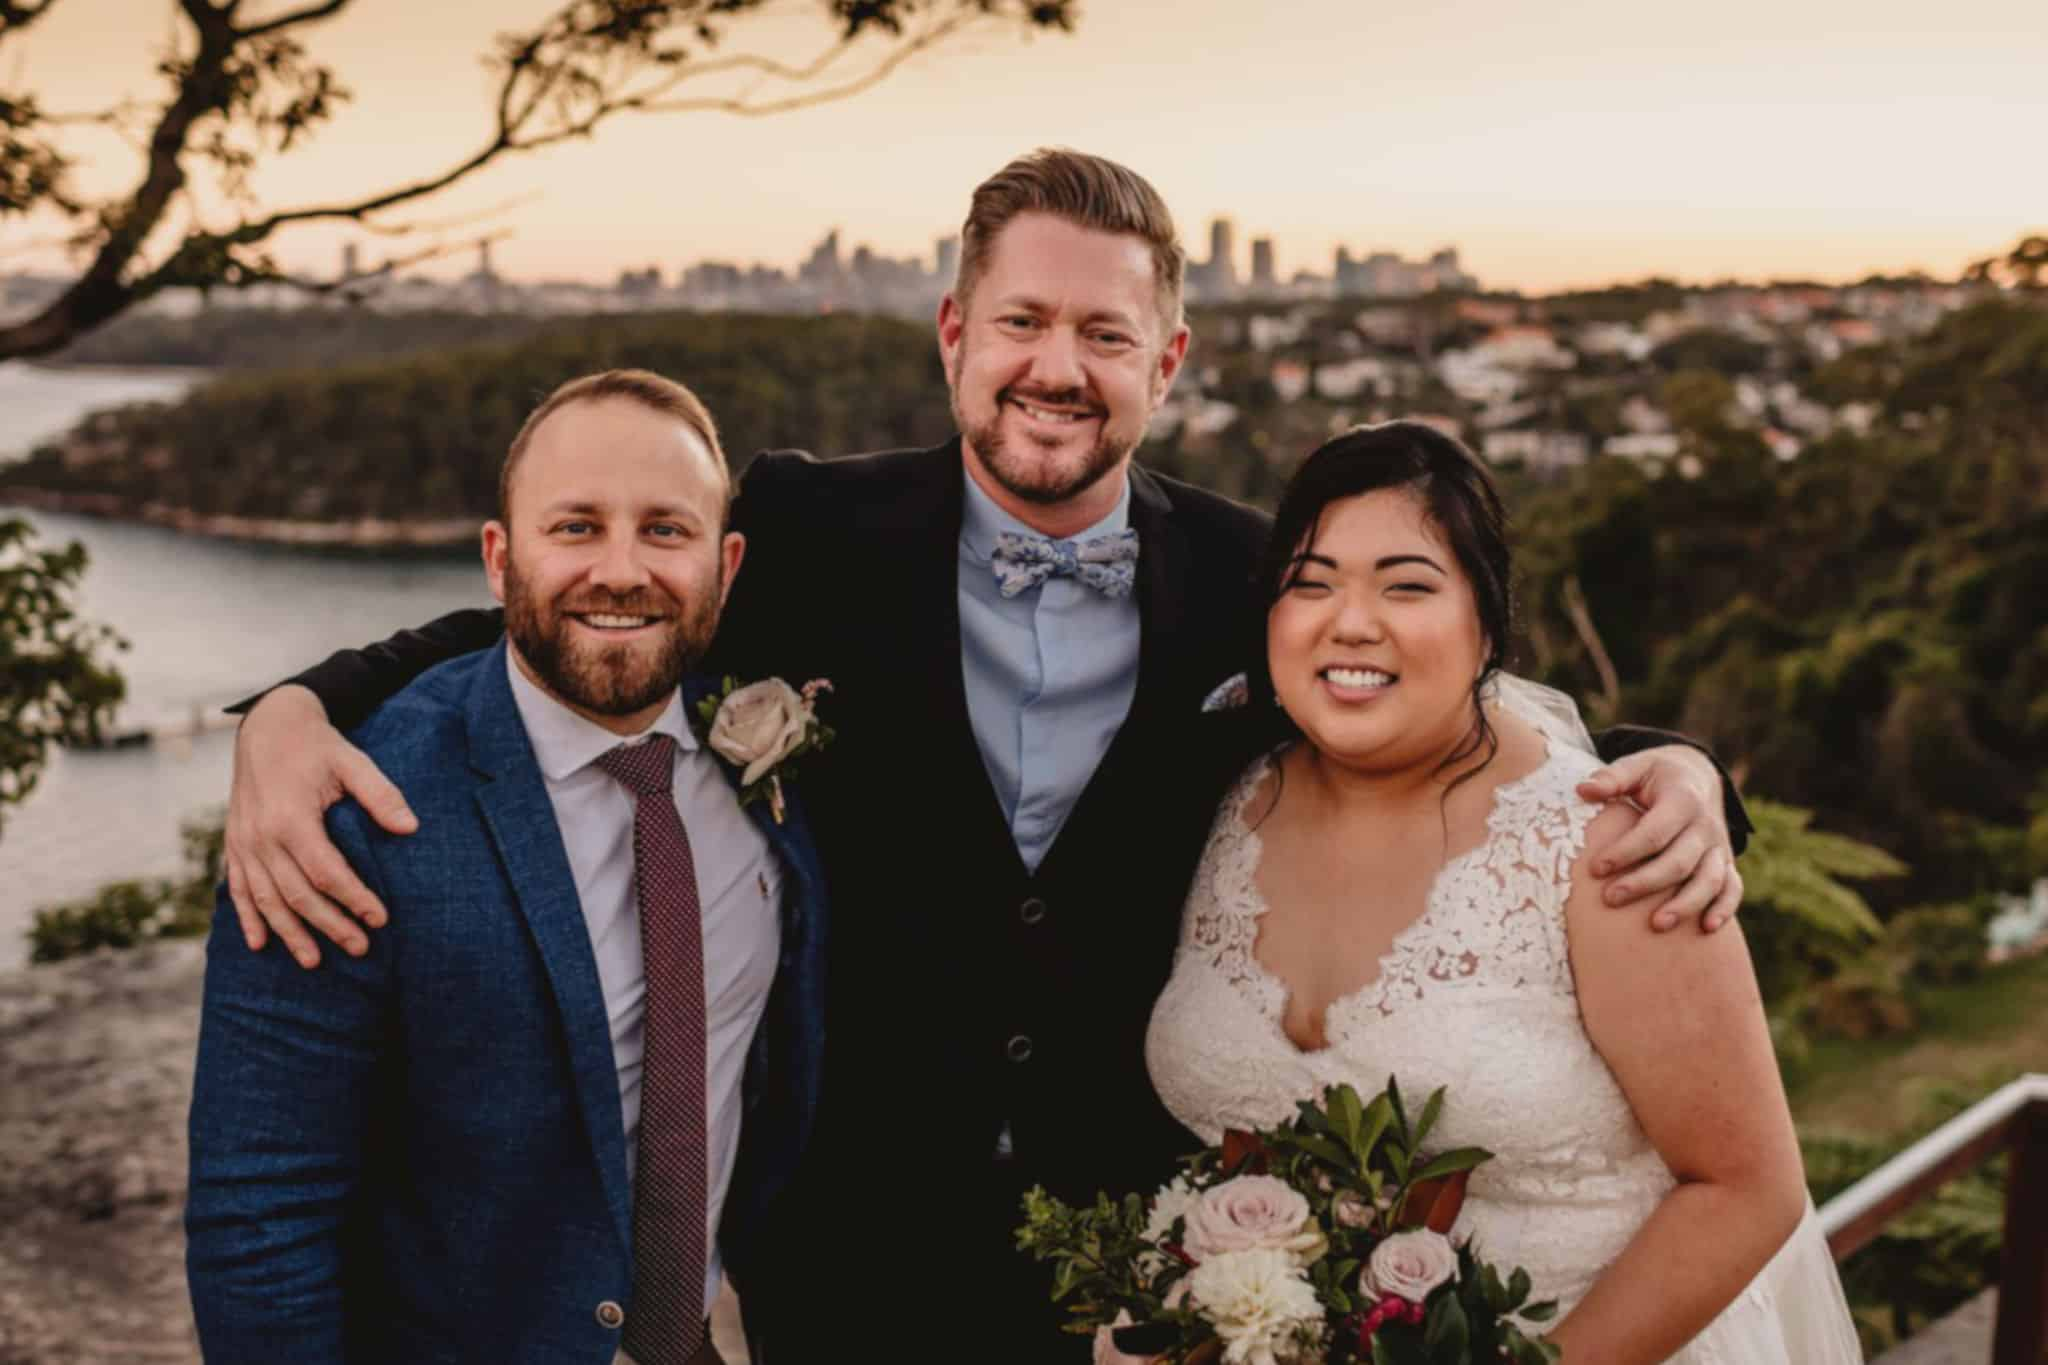 HERO Gunners Barracks Wedding - Sydney Marriage Celebrant Stephen Lee V2